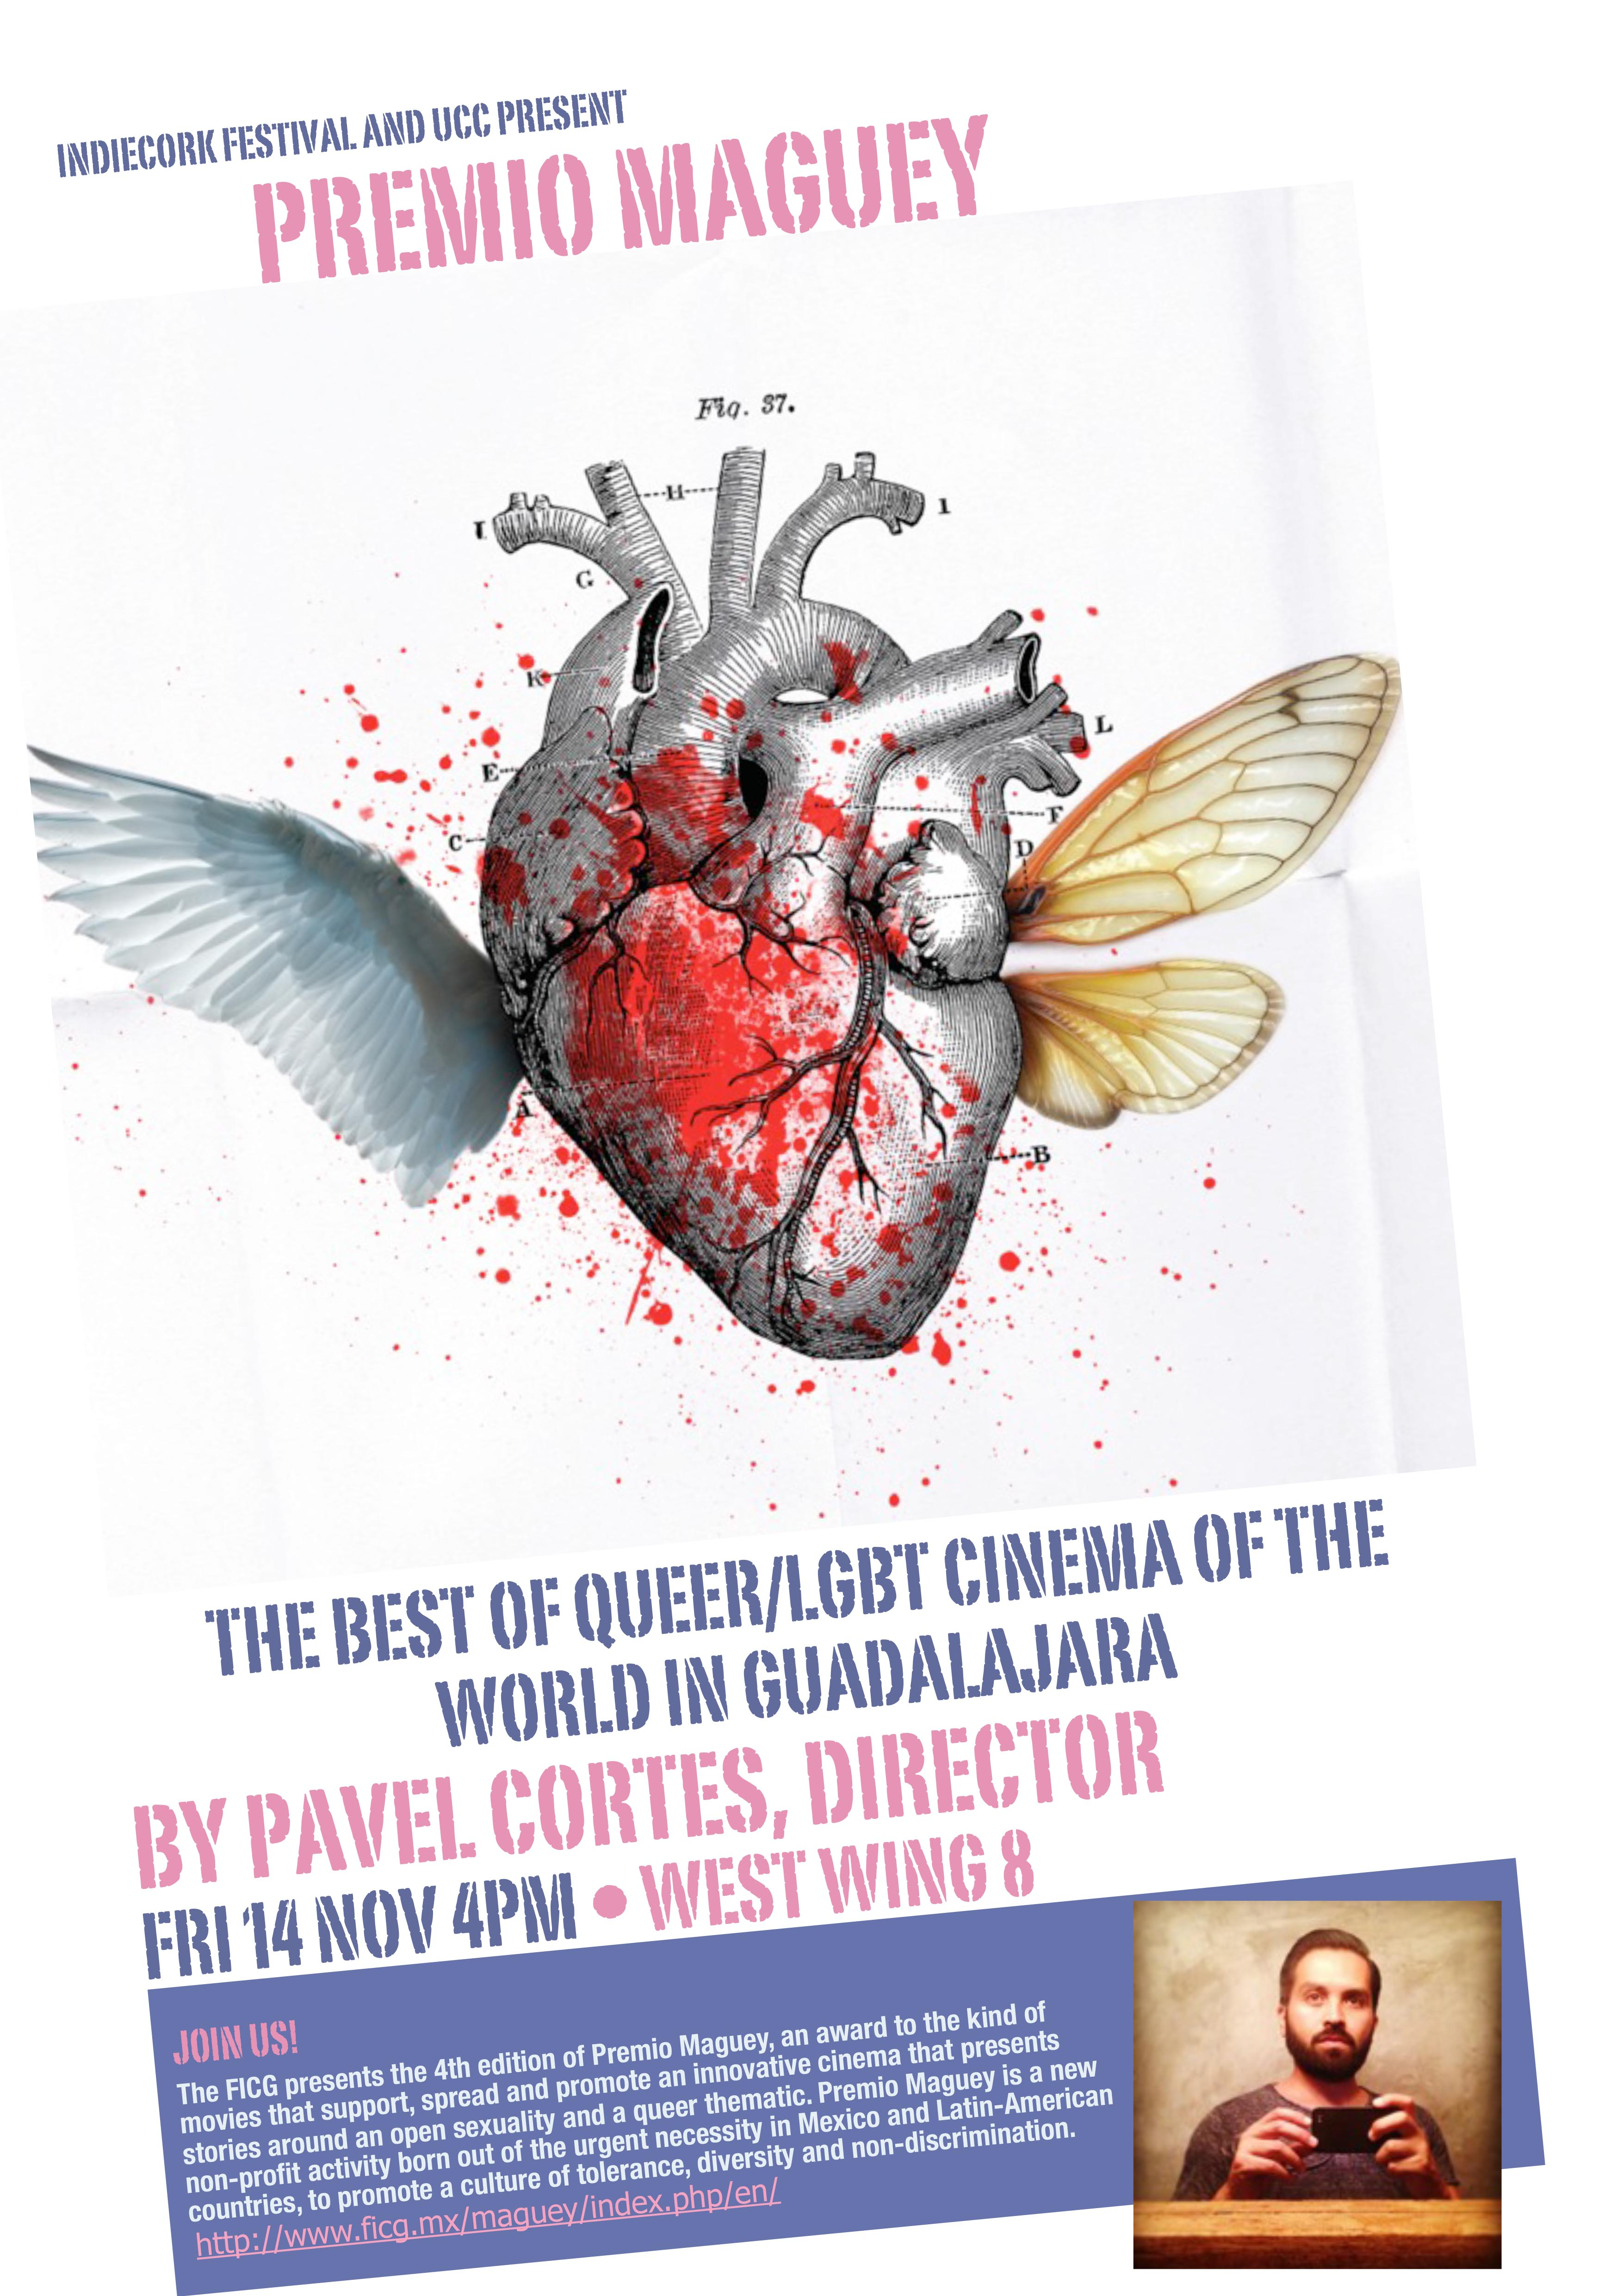 Talk with Pavel Cortés – Director of the Maguey Award